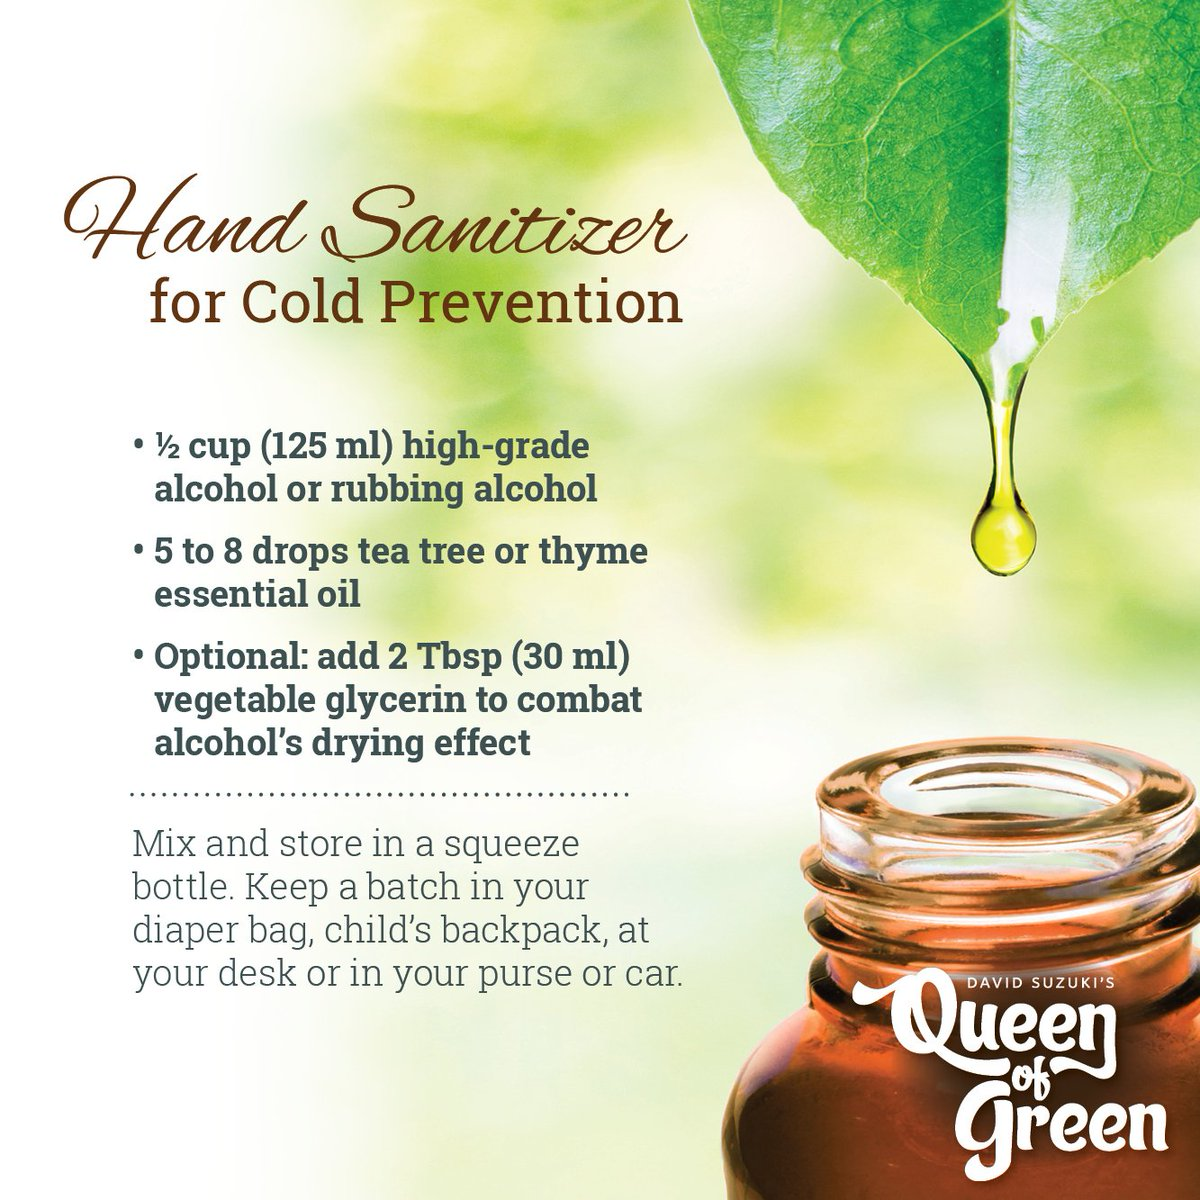 Beat #cold and #flu season with this #DIY #allnatural #handsanitizer #recipe ! Find more at https://t.co/f2lGgWxhQk https://t.co/MnLZwvKHAa